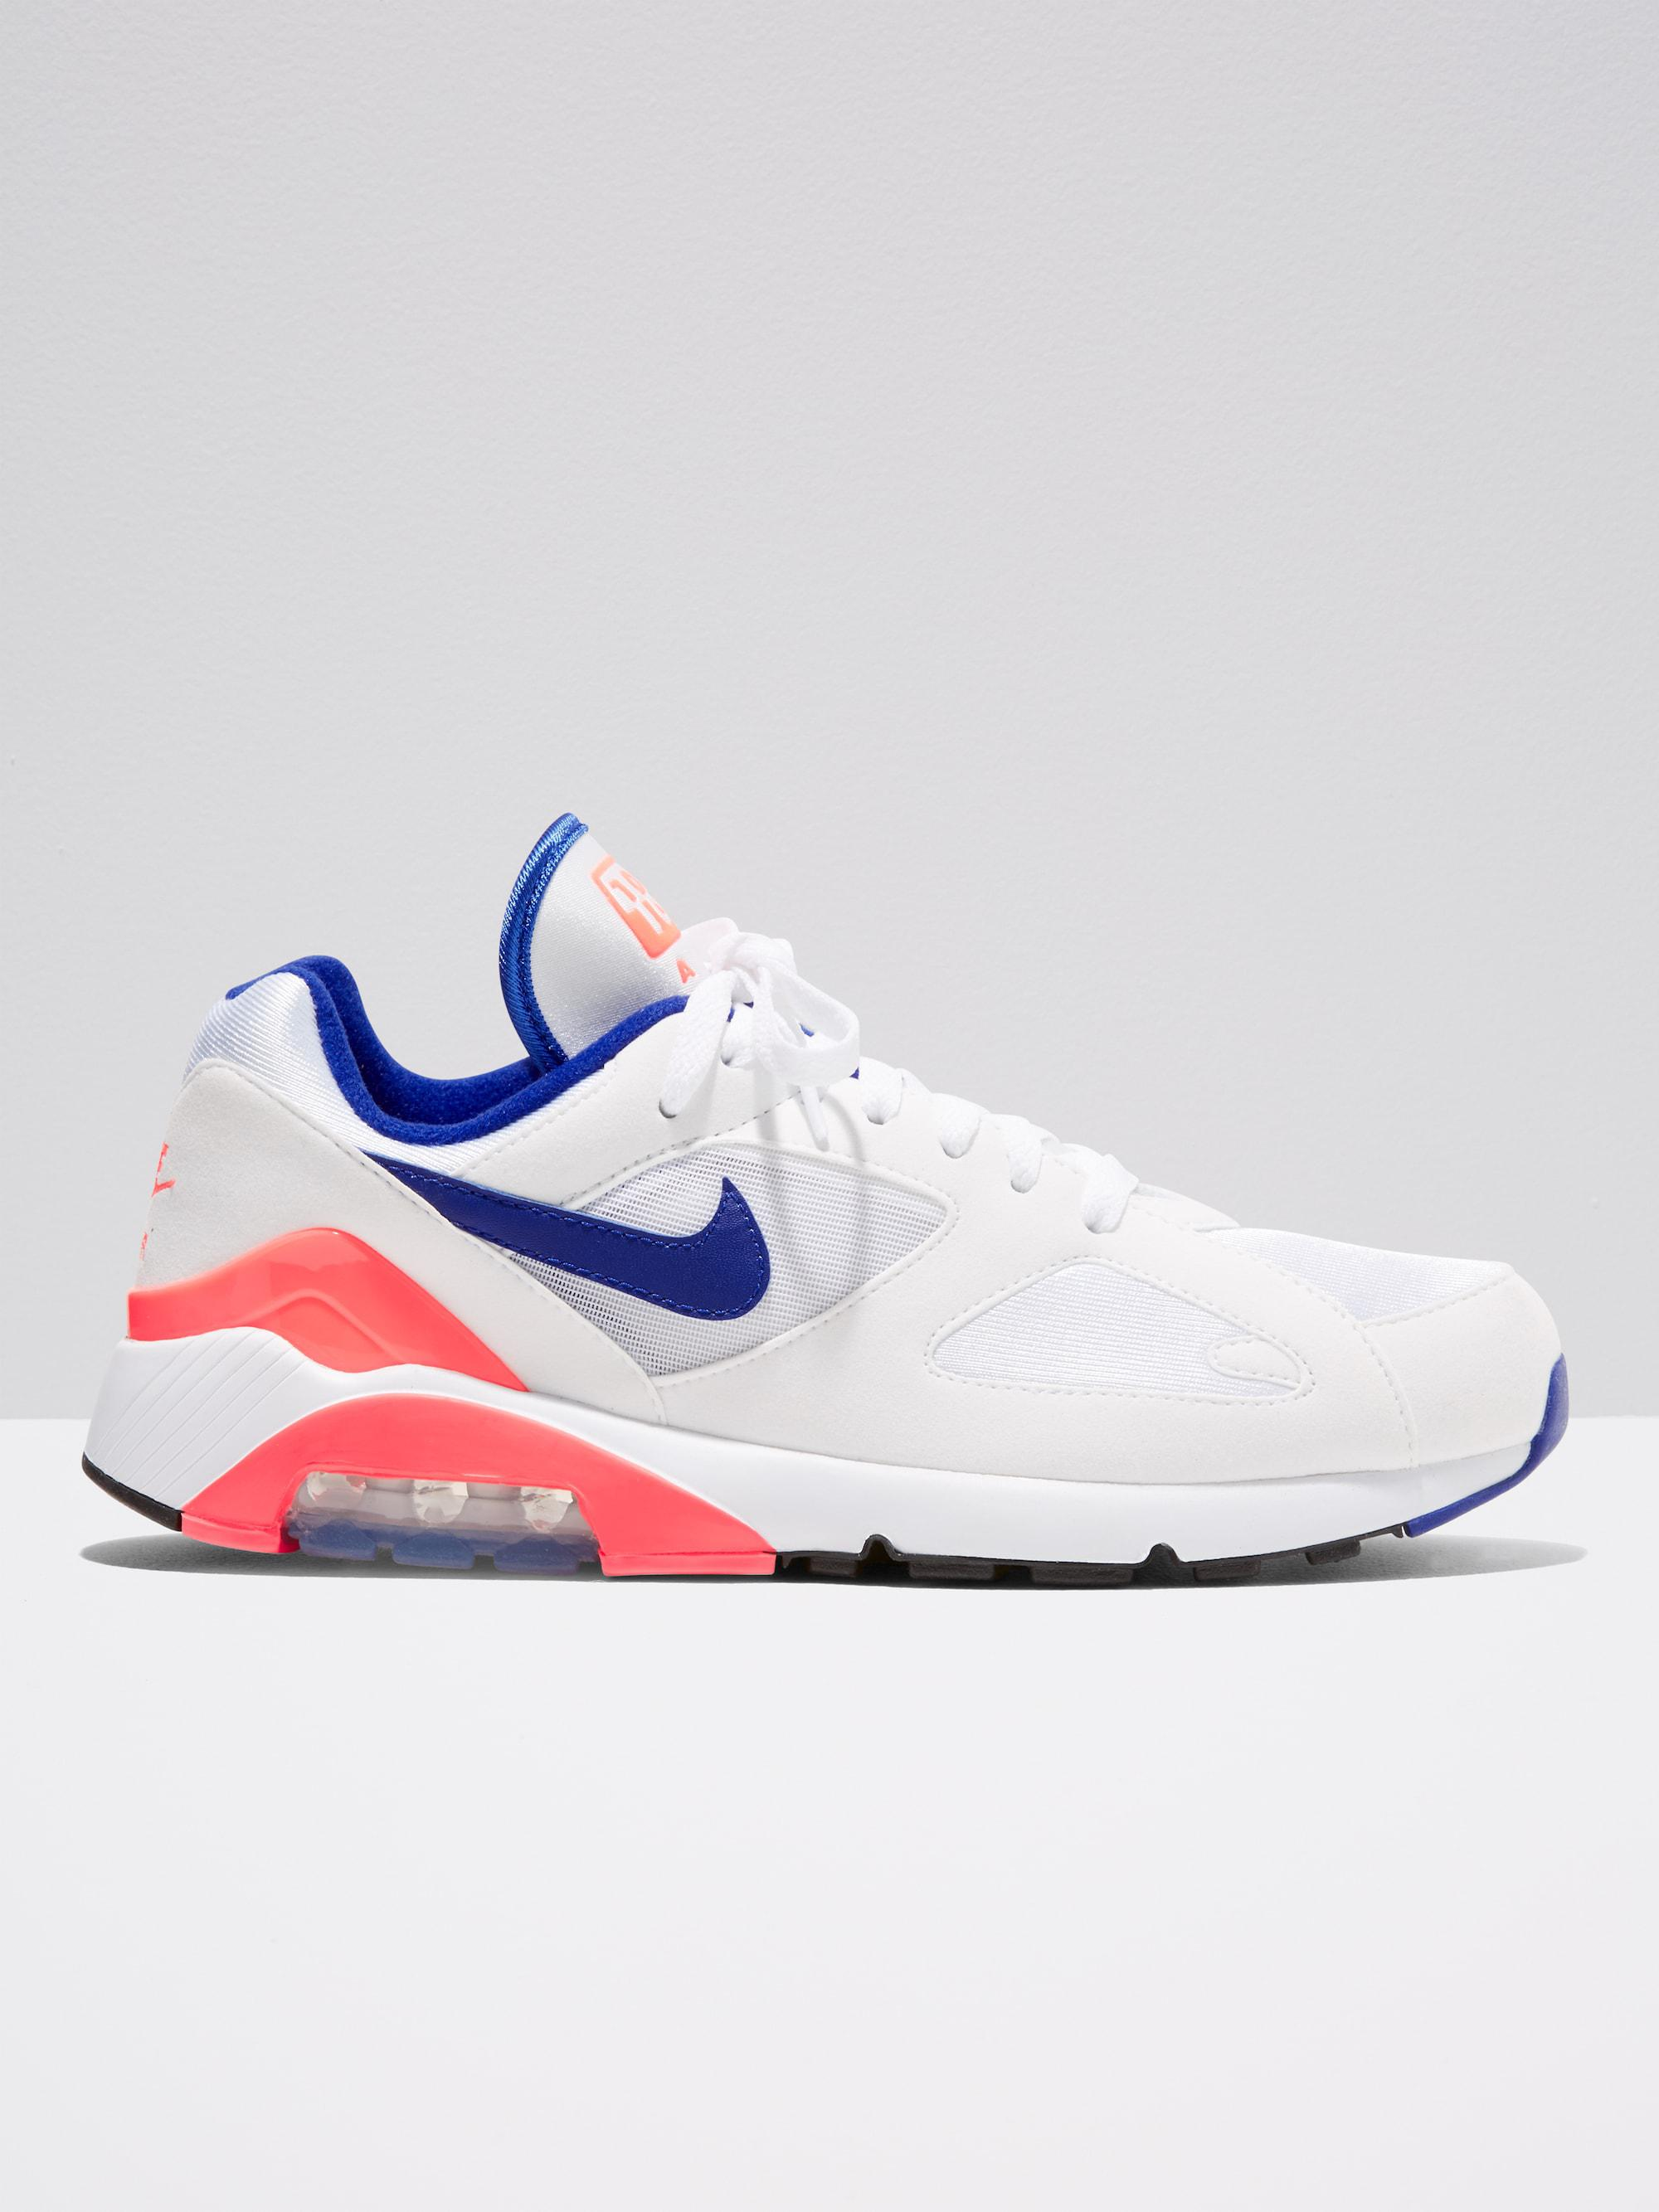 af4e3c7a268d ... promo code for lyst frank and oak nike men air max 180 in white  ultramarine solar ...